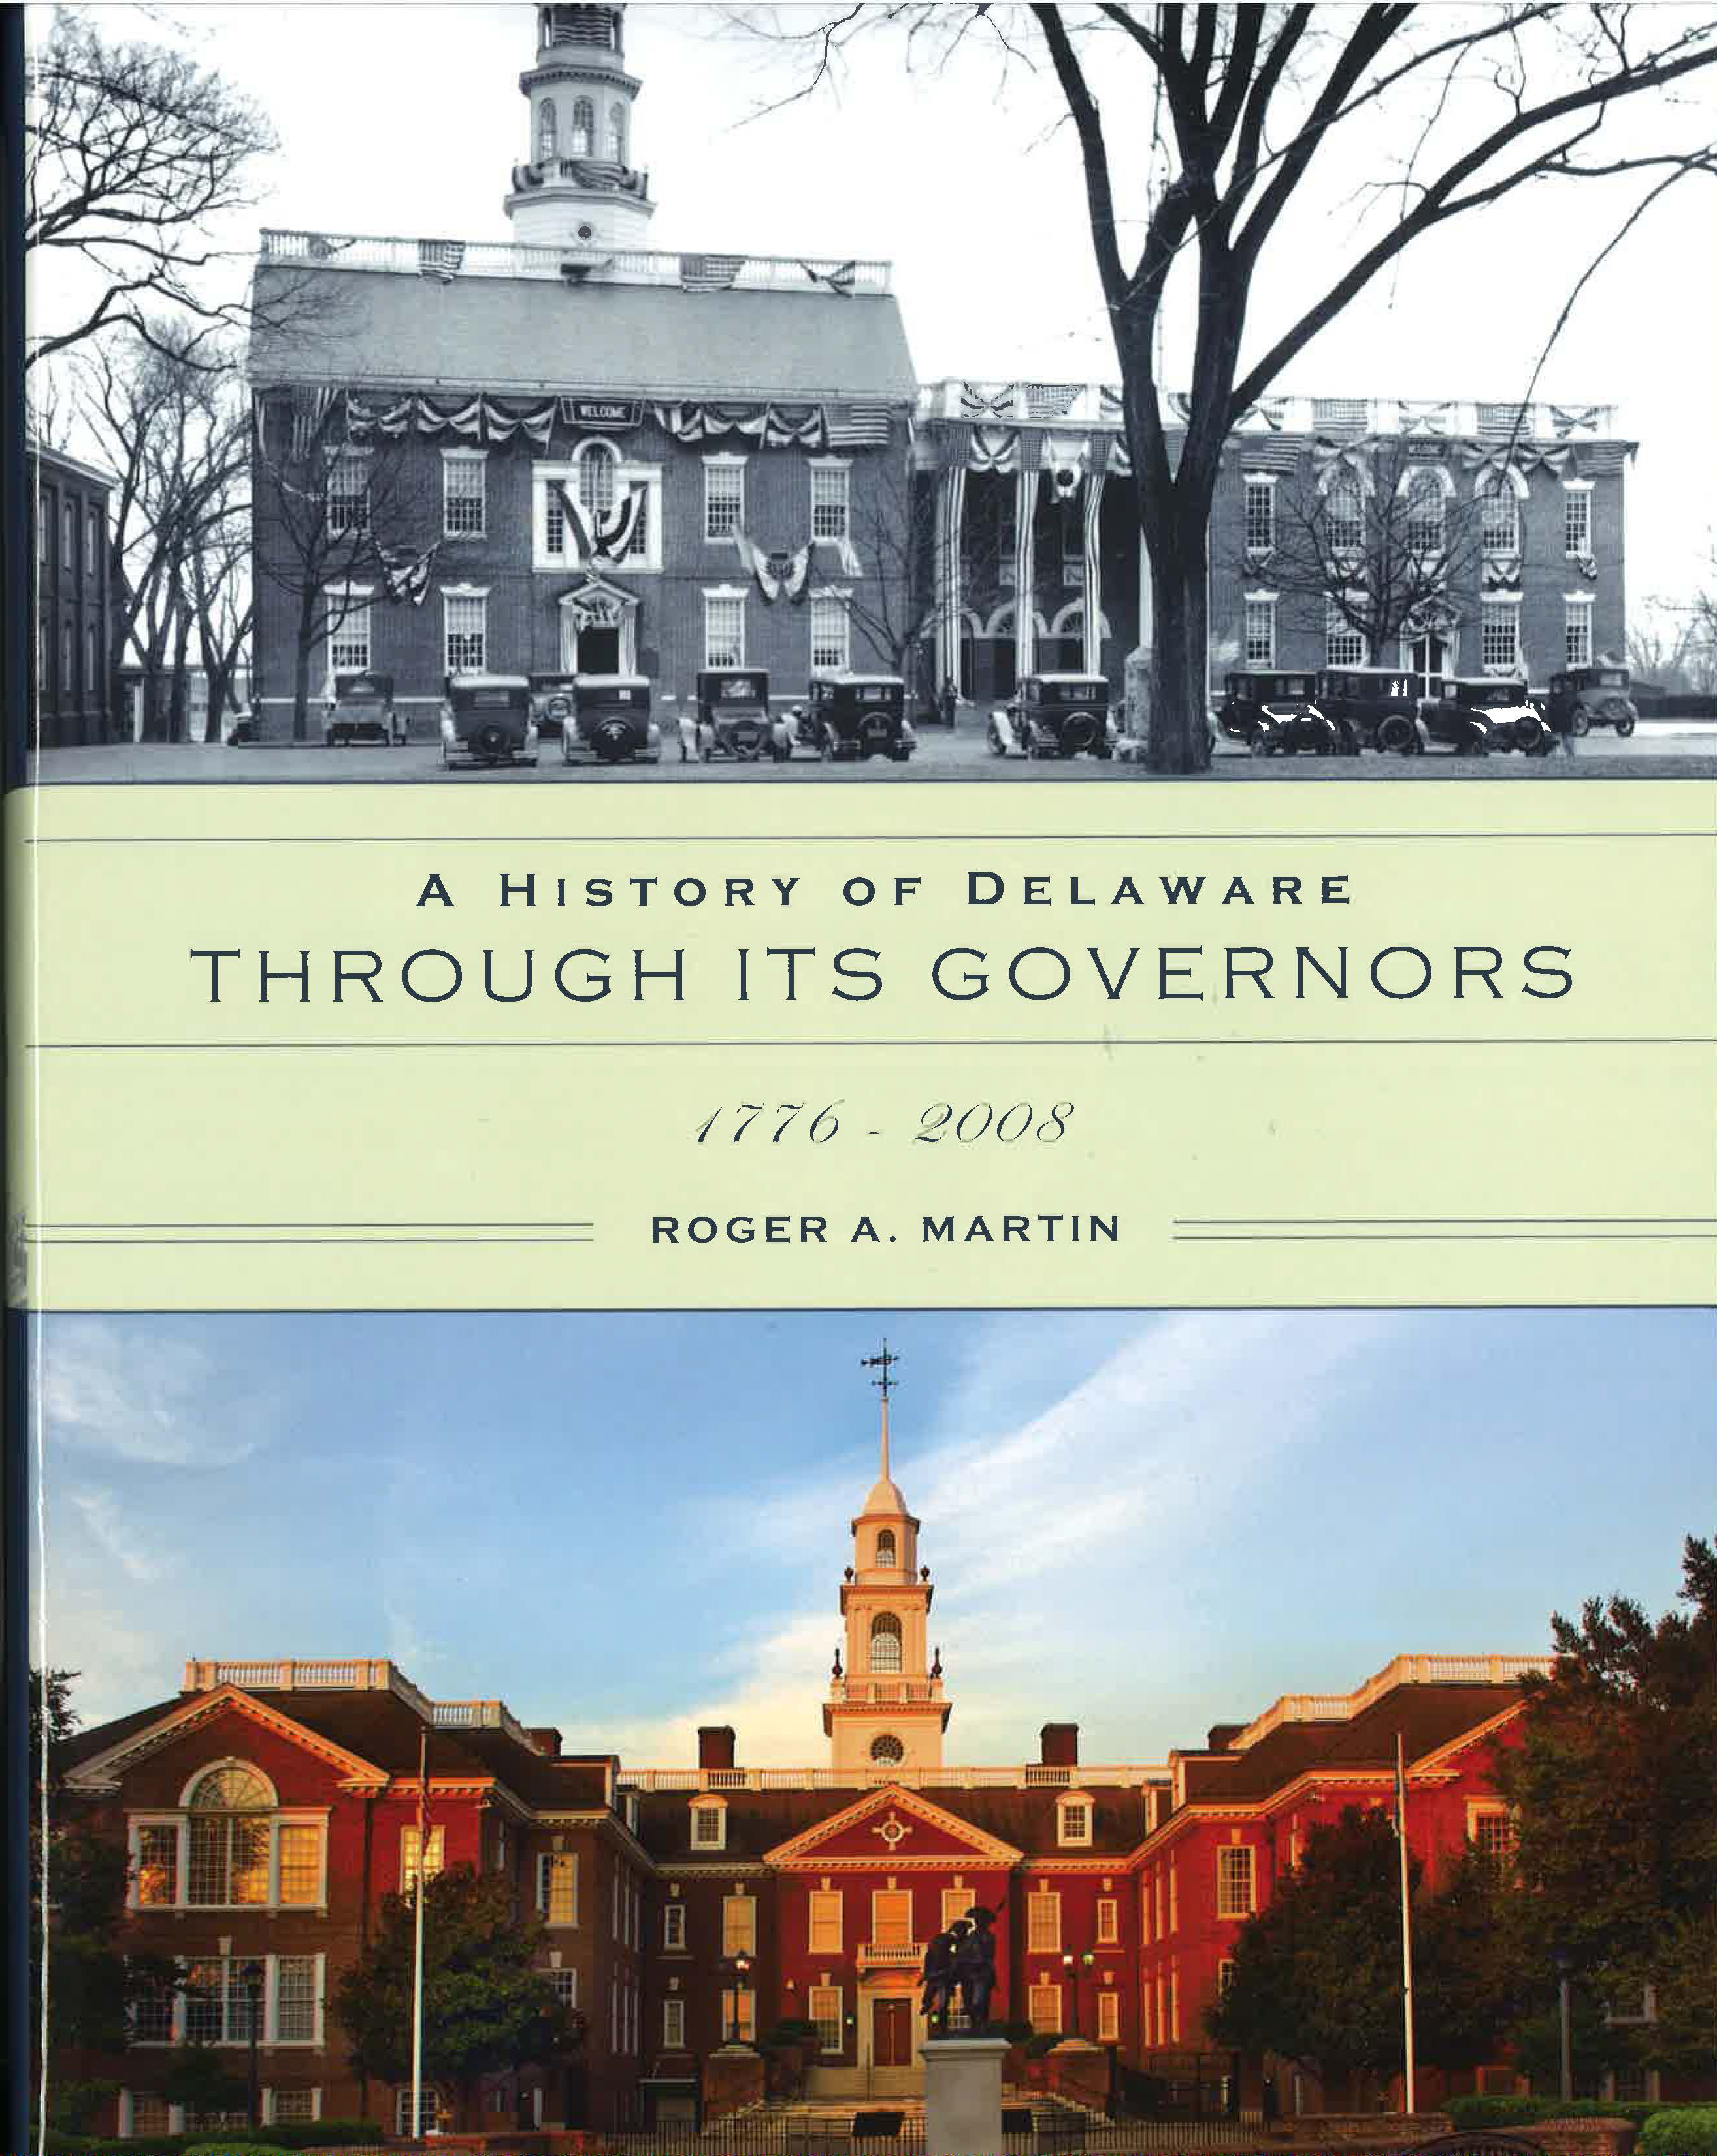 A History of Delaware Through Its Governors, by Roger A. Martin, 2015, 555 pp., HARDCOVER - Prices reflect the cost of the book PLUS S&H fee of $7.50.